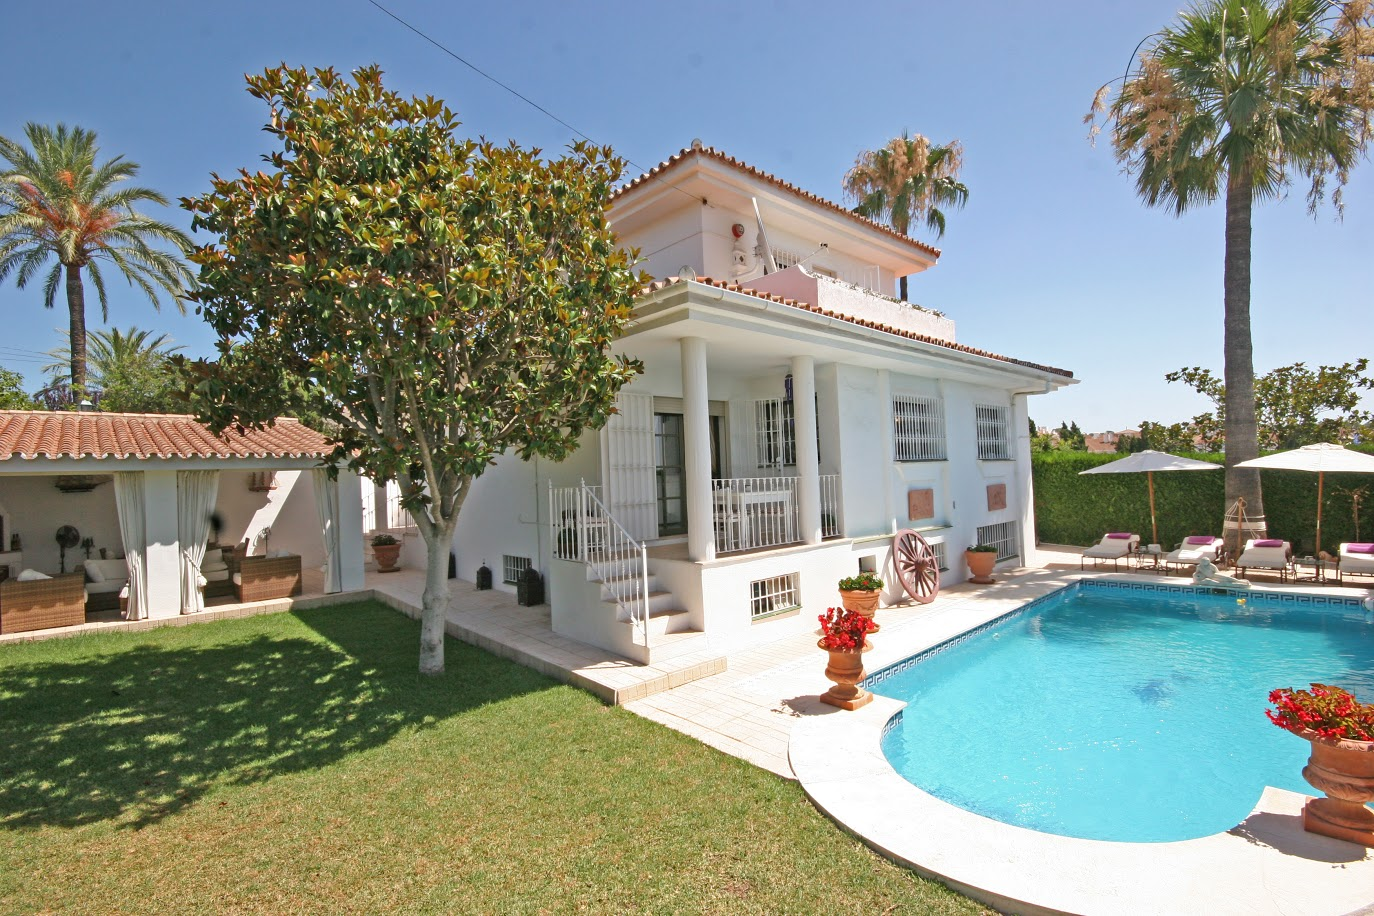 LOVELY FAMILY VILLA FOR SALE IN EL PILAR ESTEPONA WAS 795.000€ AND NOW 749.000€